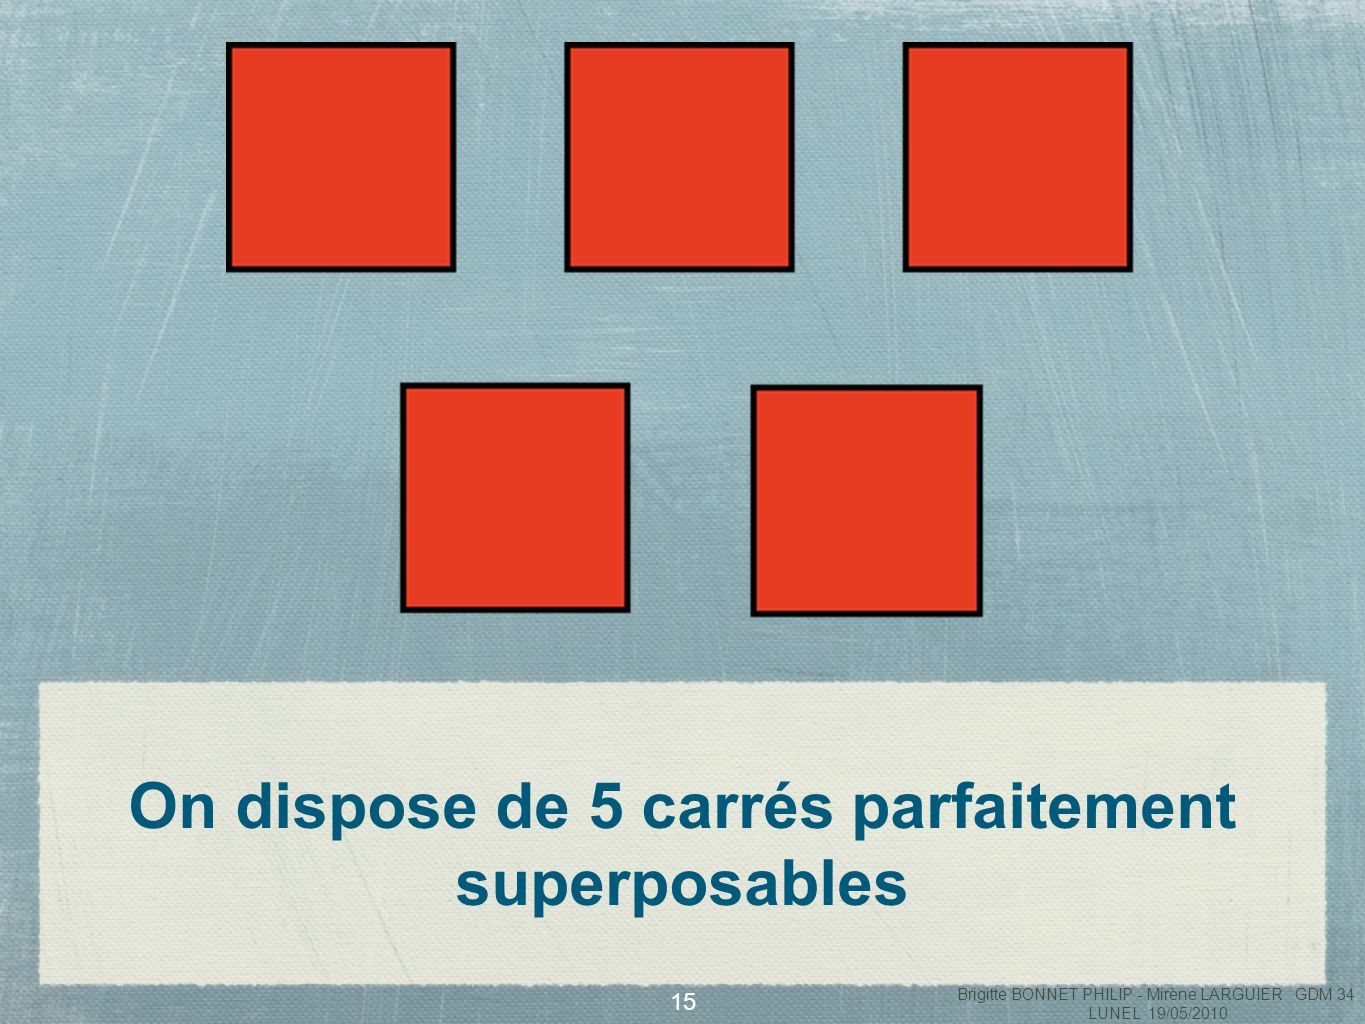 On dispose de 5 carrés parfaitement superposables